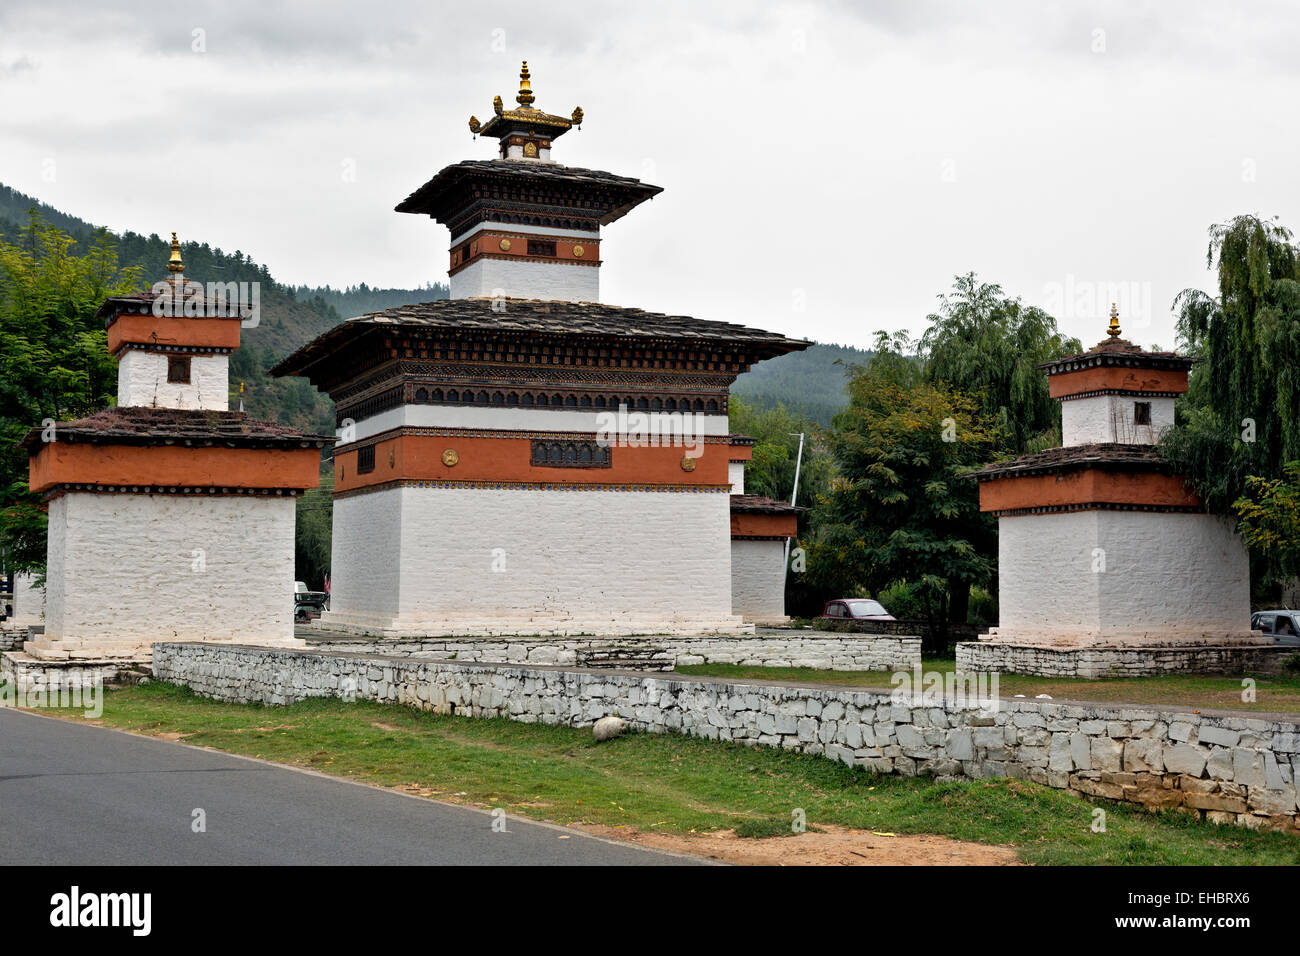 BU00310-00...BHUTAN - The Five Chortens welcome visitors to the town of Paro. - Stock Image